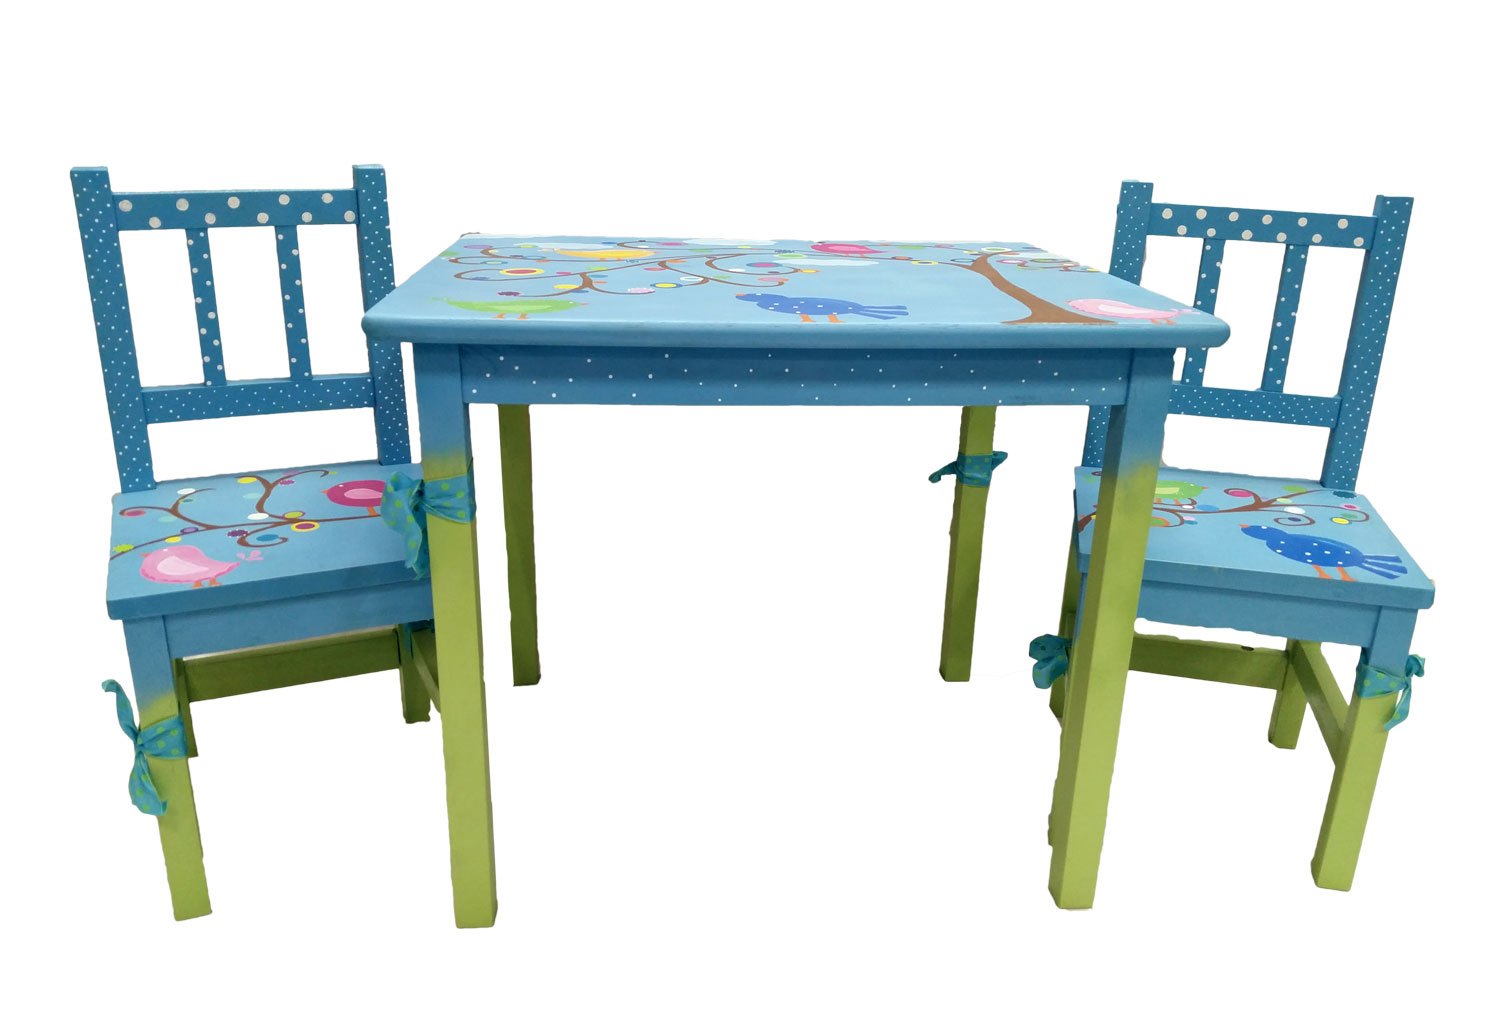 IL_table_chairs_1500.jpg